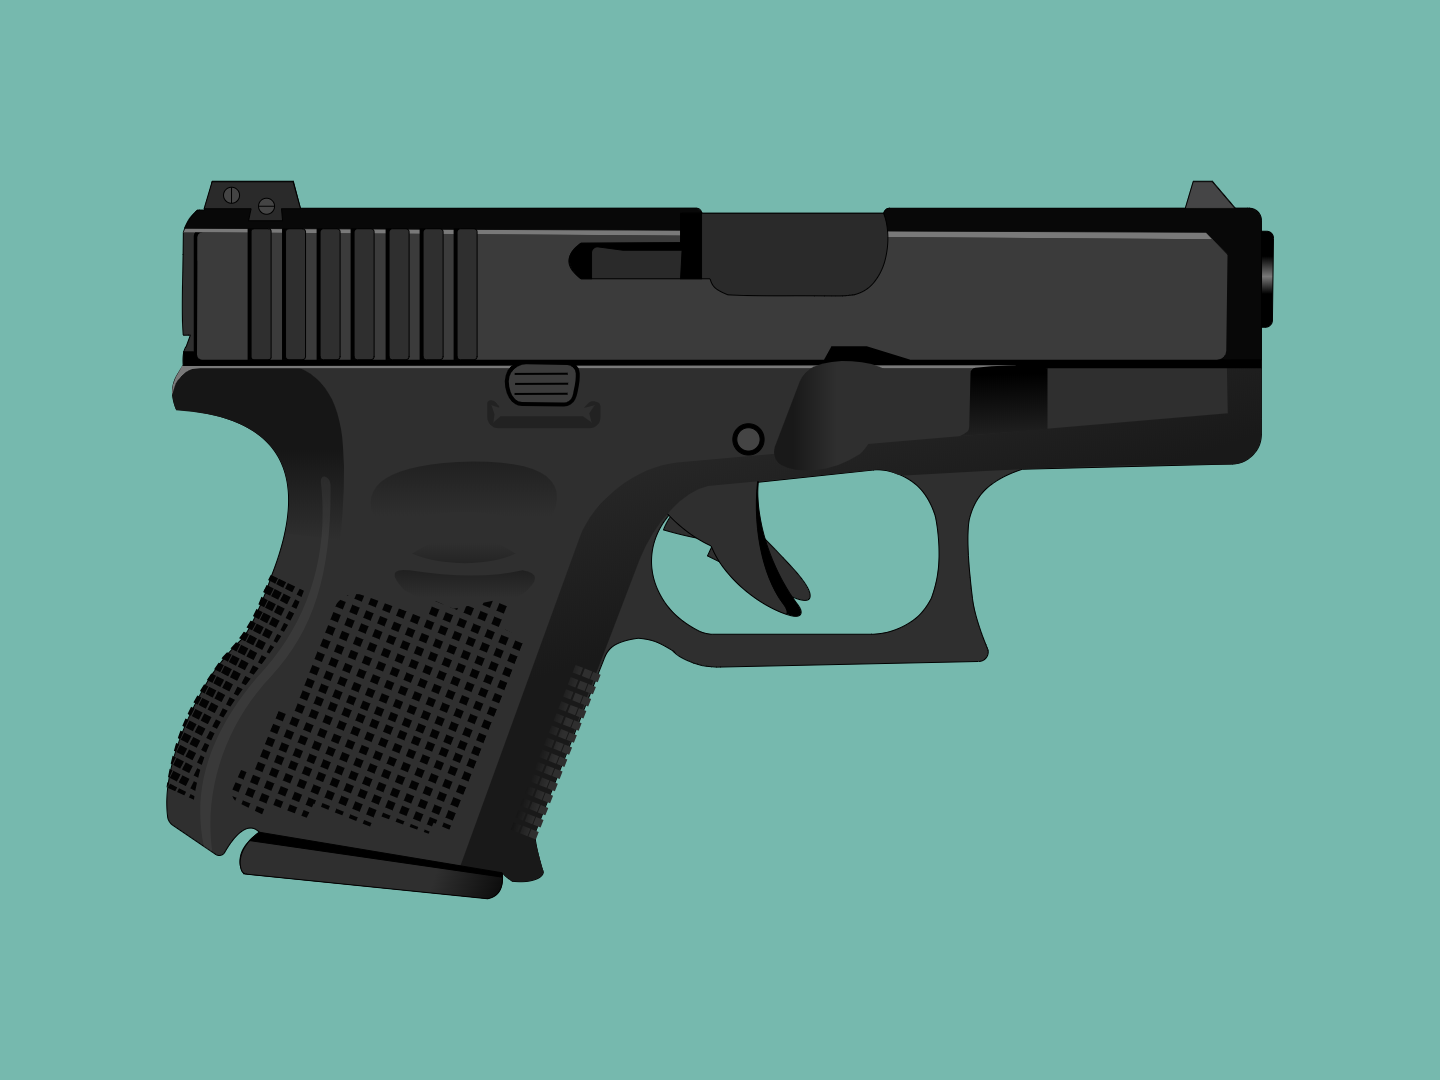 Glock 26 Gen5 9mm Vector Art by Raphael Gonçalves on Dribbble